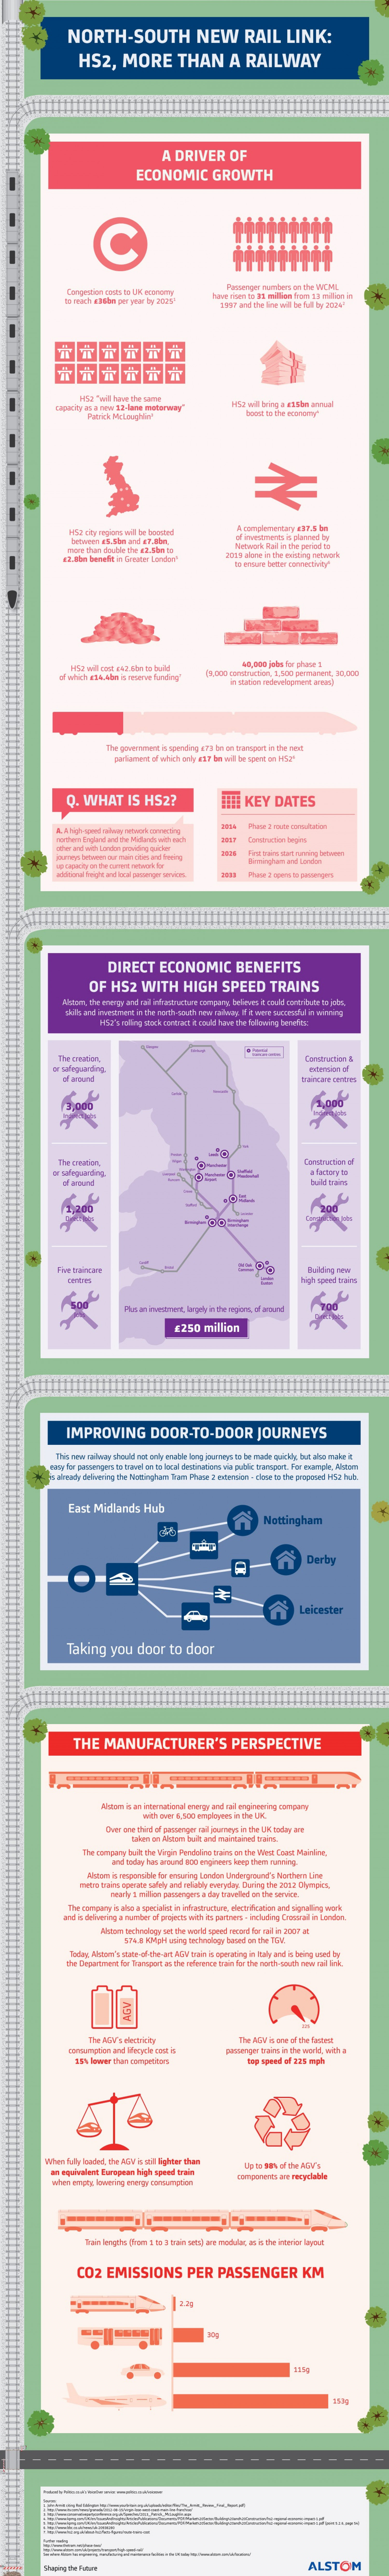 North-South new rail link: HS2, more than a railway Infographic